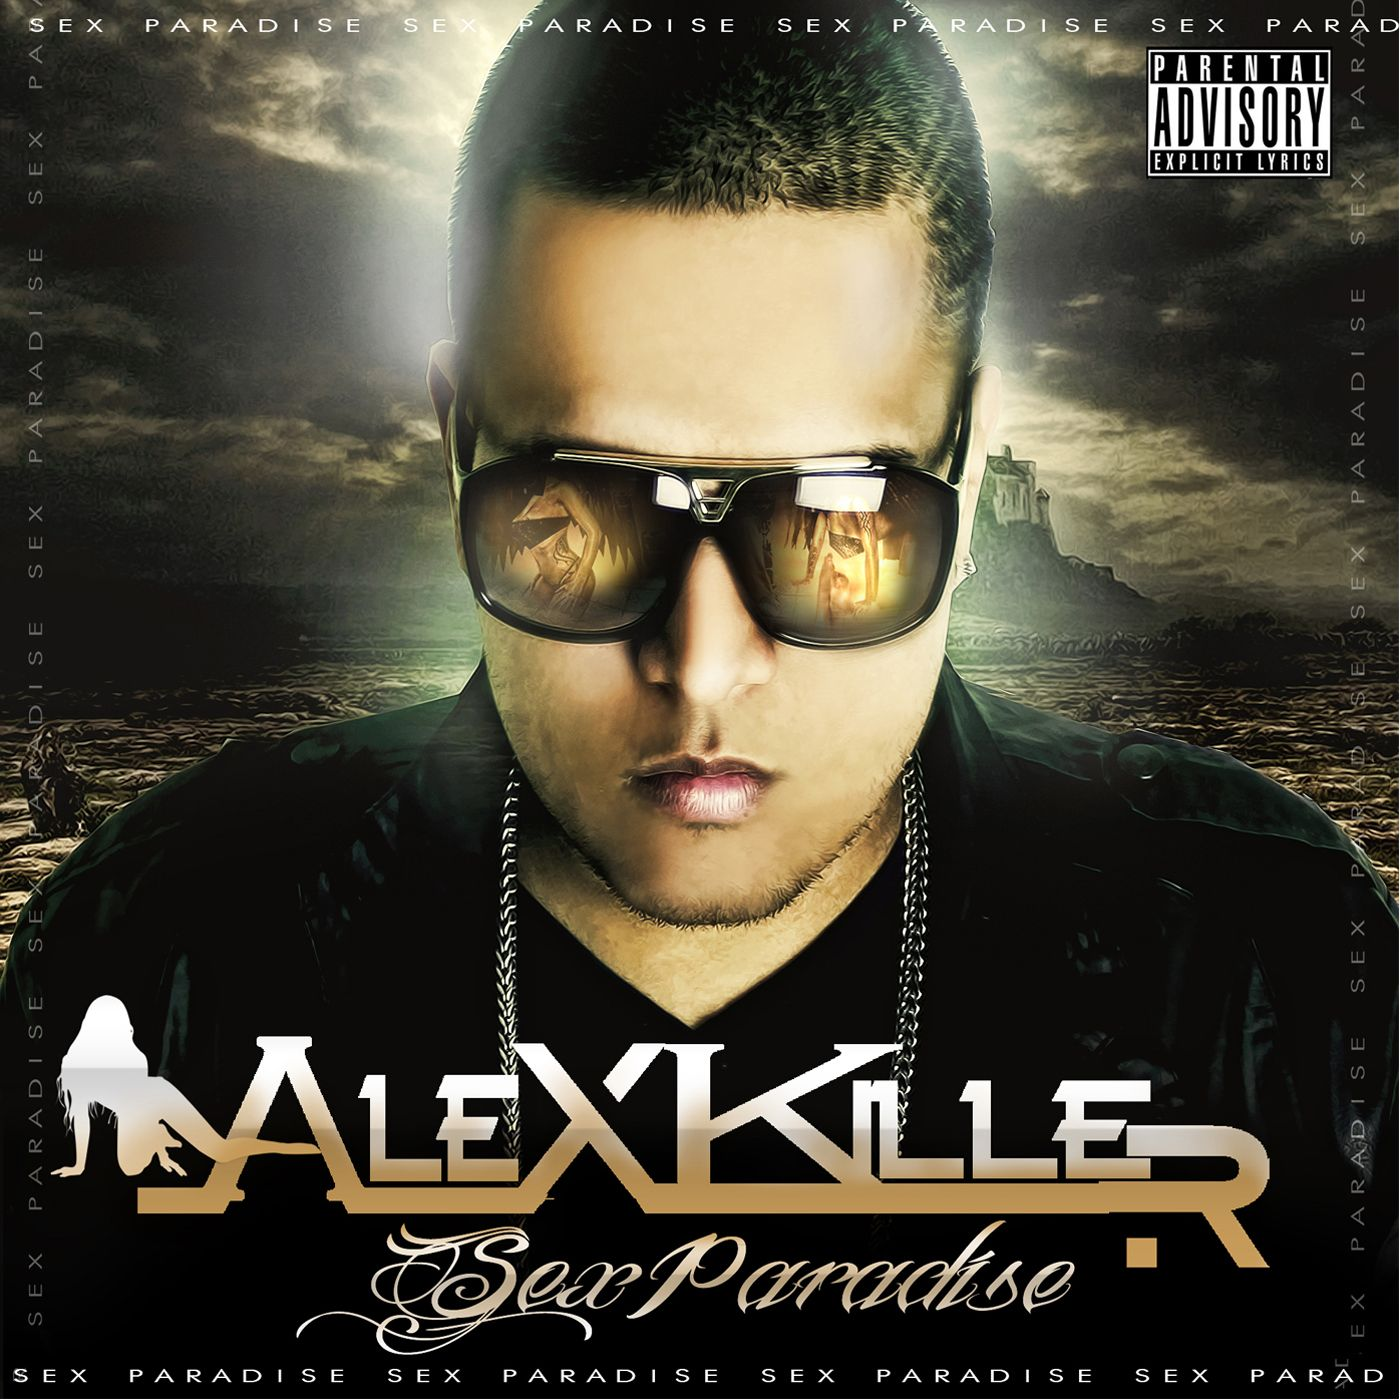 Alex Killer - Sex Paradise 2011 (CD ORIGINAL)